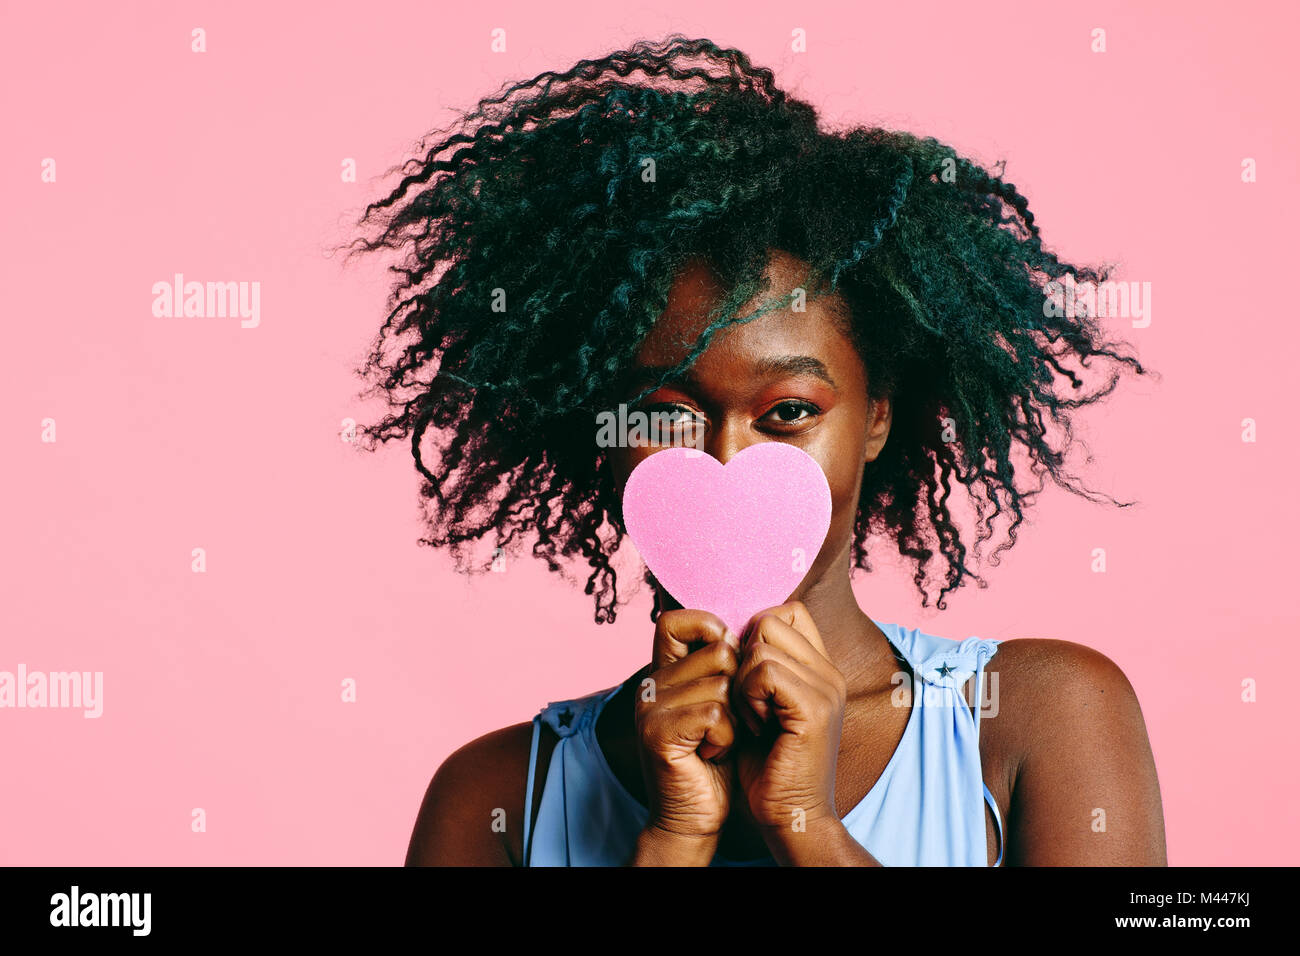 Girl with blueish black curly hair holding a pink heart in front of her face - Stock Image